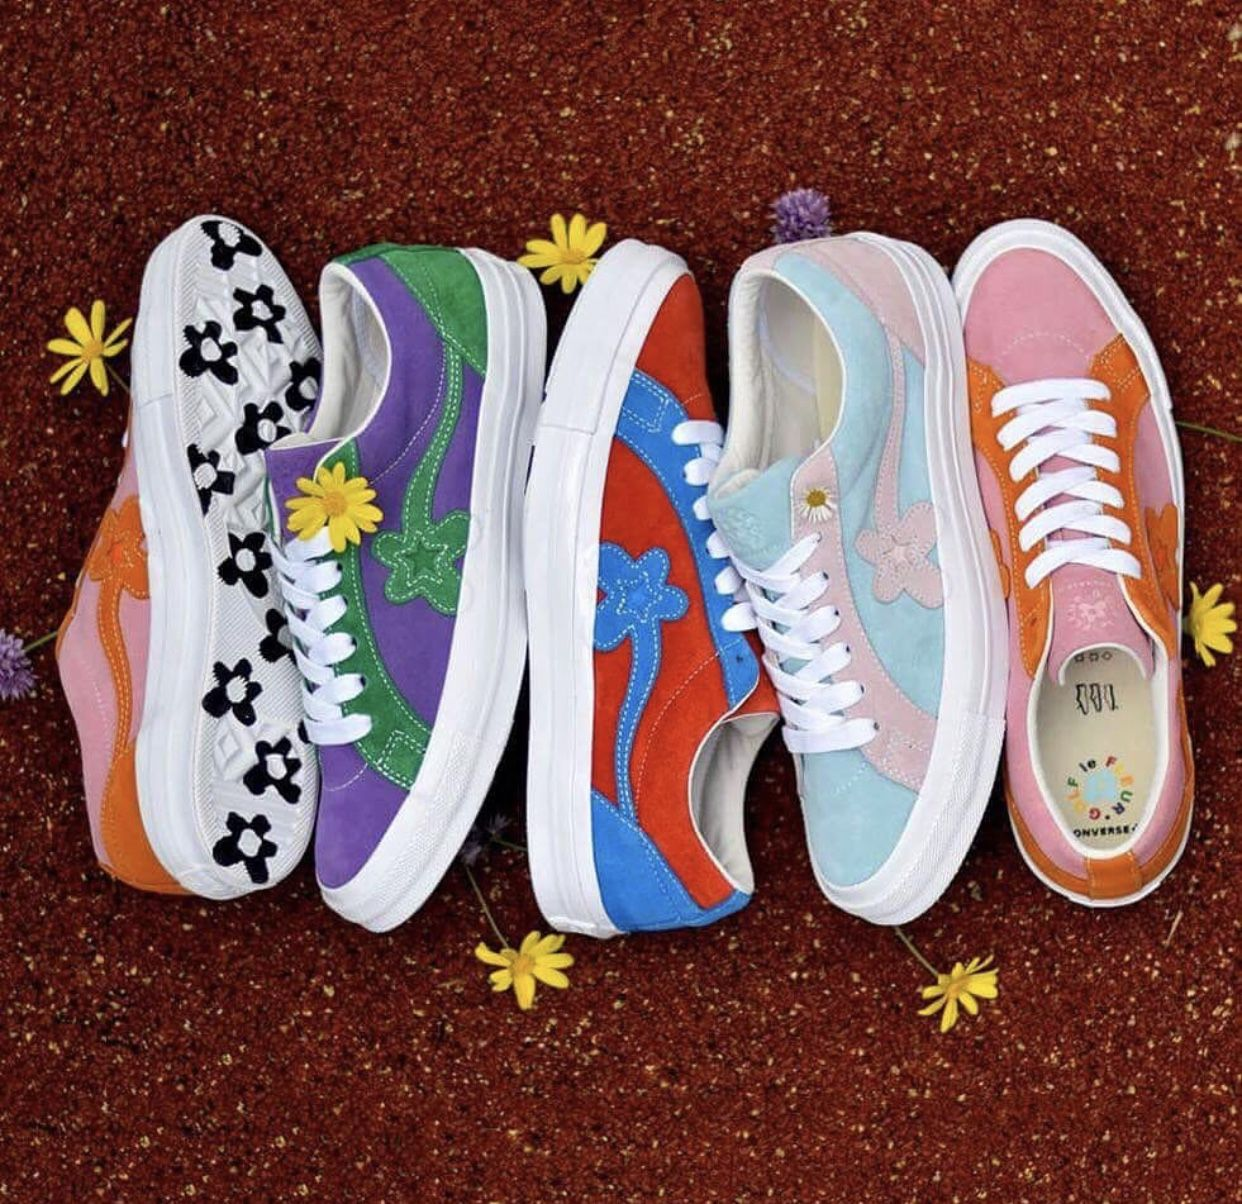 Tyler The Creator X Converse Golf Le Fleur Golf Shoes Aesthetic Shoes Golf Fashion